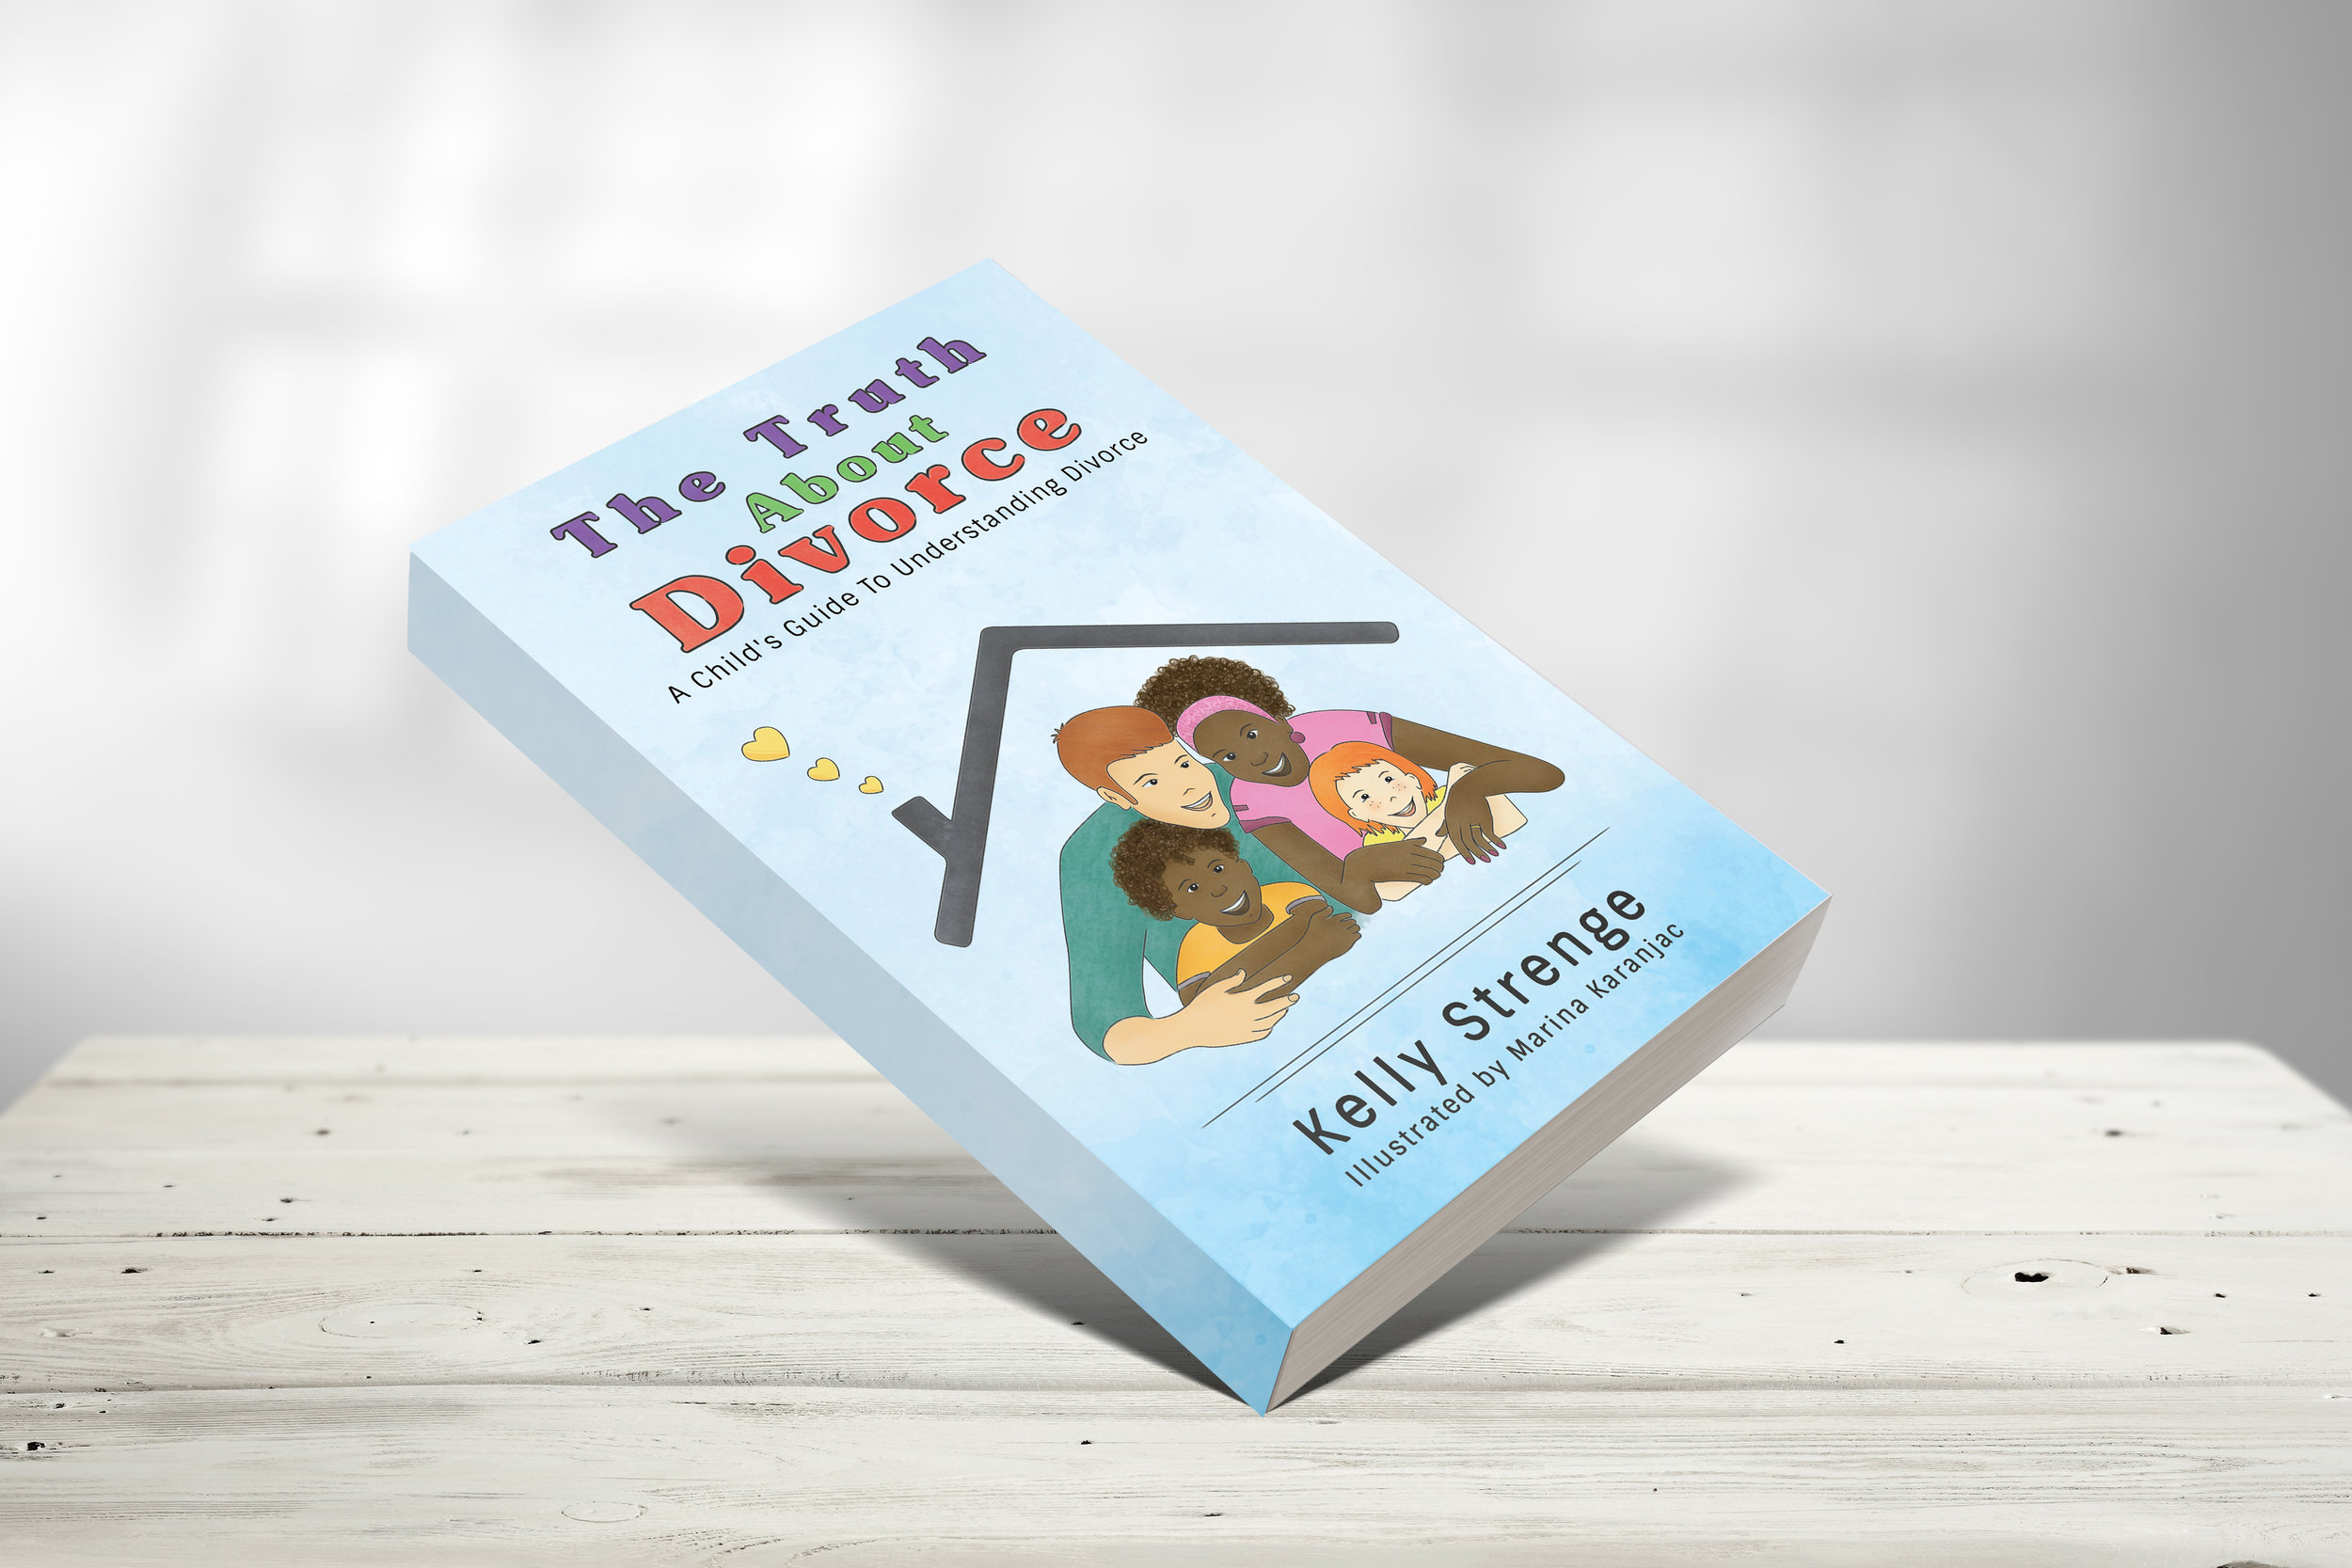 The Truth About Divorce - This book explains the process of a divorce to children in a very honest and positive light while also helping them work through the emotions that occur as a result of divorce. This book will bring them comfort, acceptance, and understanding during a very difficult time in their life.